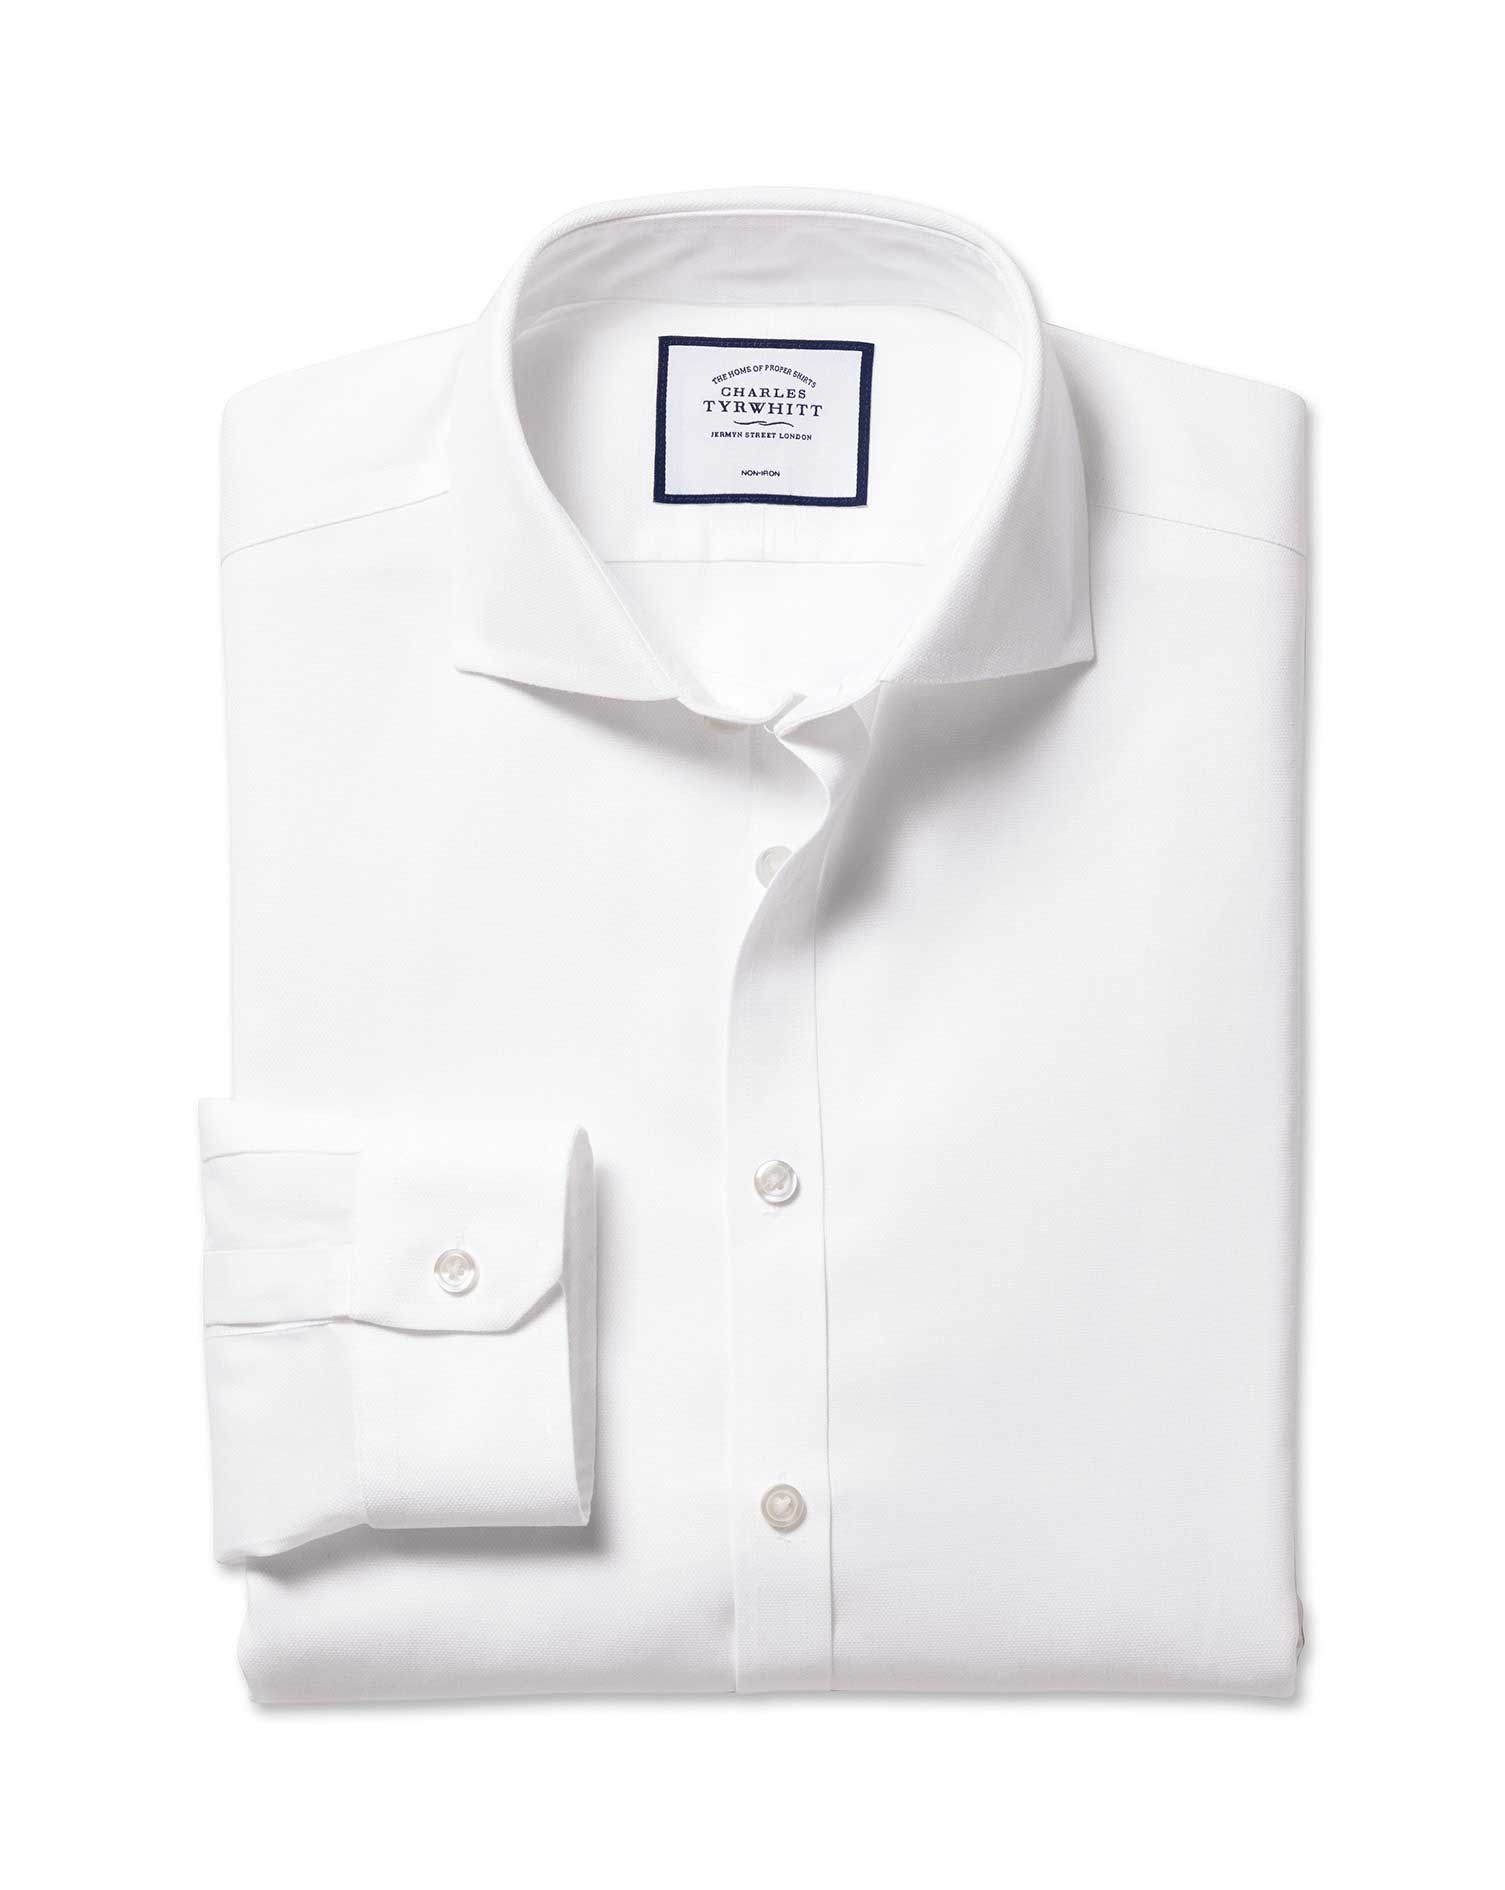 Super Slim Fit Non-Iron Cutaway White Oxford Stretch Cotton Formal Shirt Single Cuff Size 15/33 by C